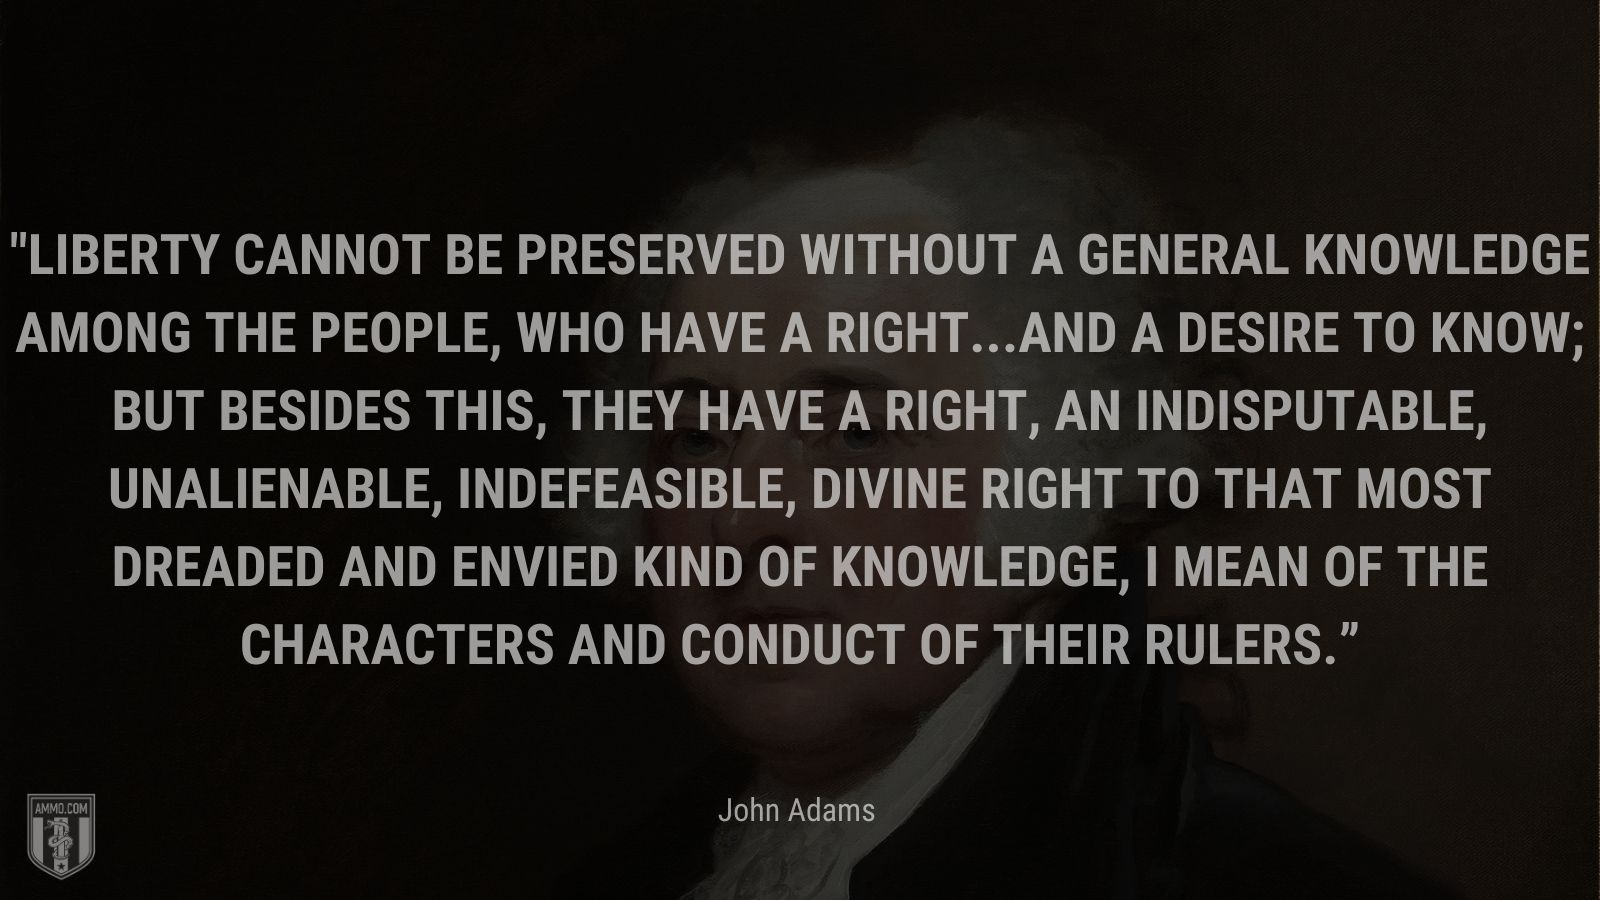 """""""Liberty cannot be preserved without a general knowledge among the people, who have a right...and a desire to know; but besides this, they have a right, an indisputable, unalienable, indefeasible, divine right to that most dreaded and envied kind of knowledge, I mean of the characters and conduct of their rulers."""" - John Adams"""